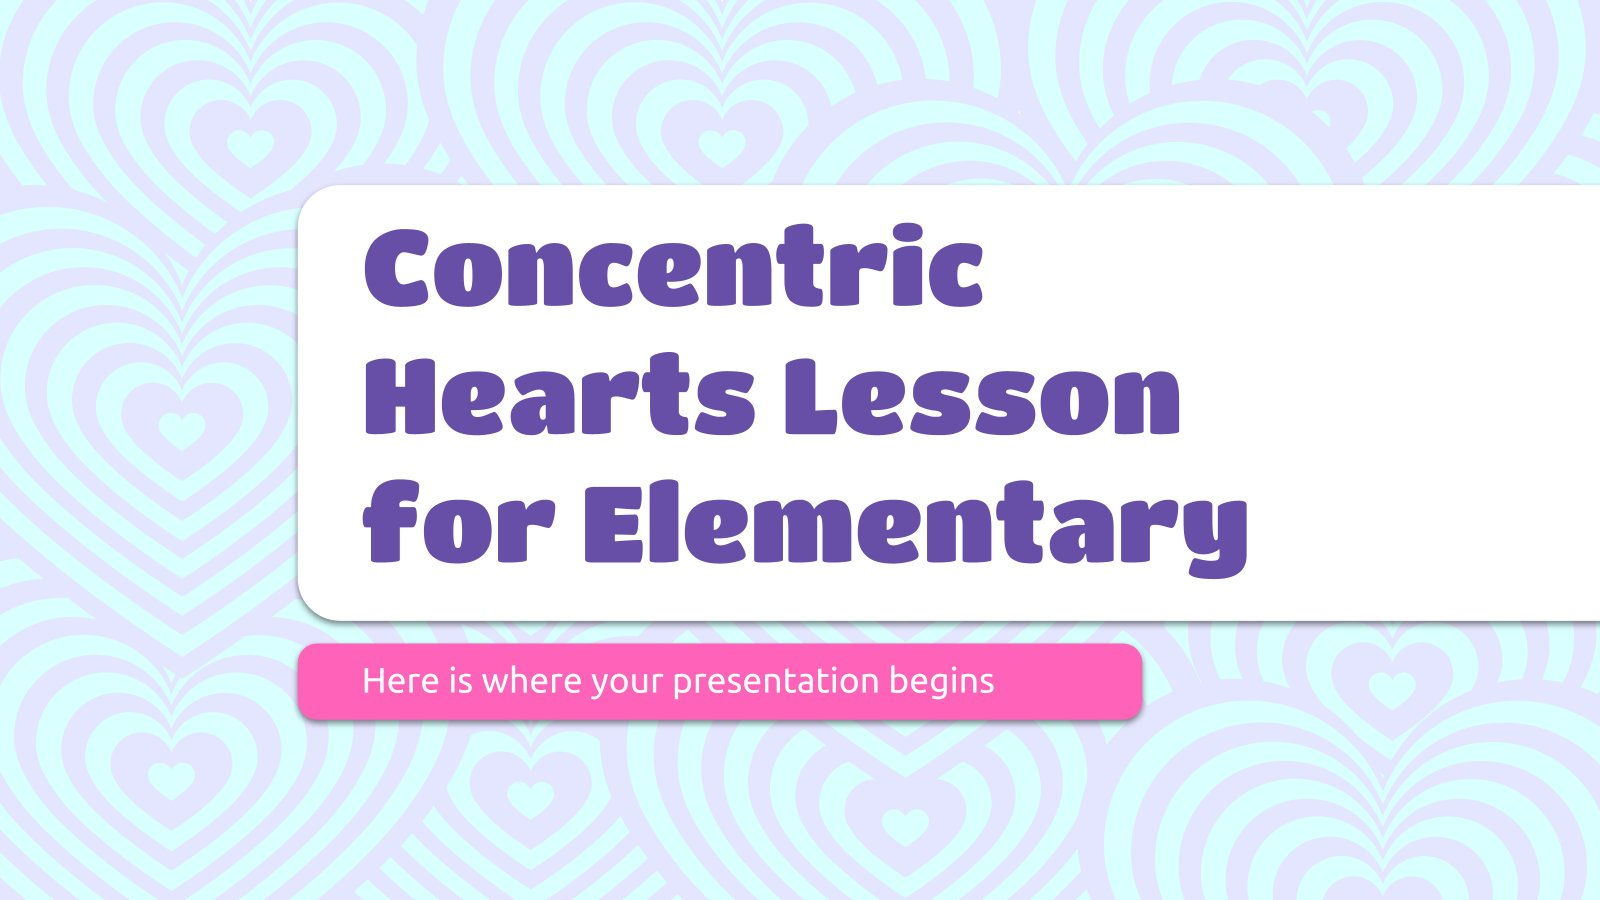 Concentric Hearts Lesson for Elementary presentation template